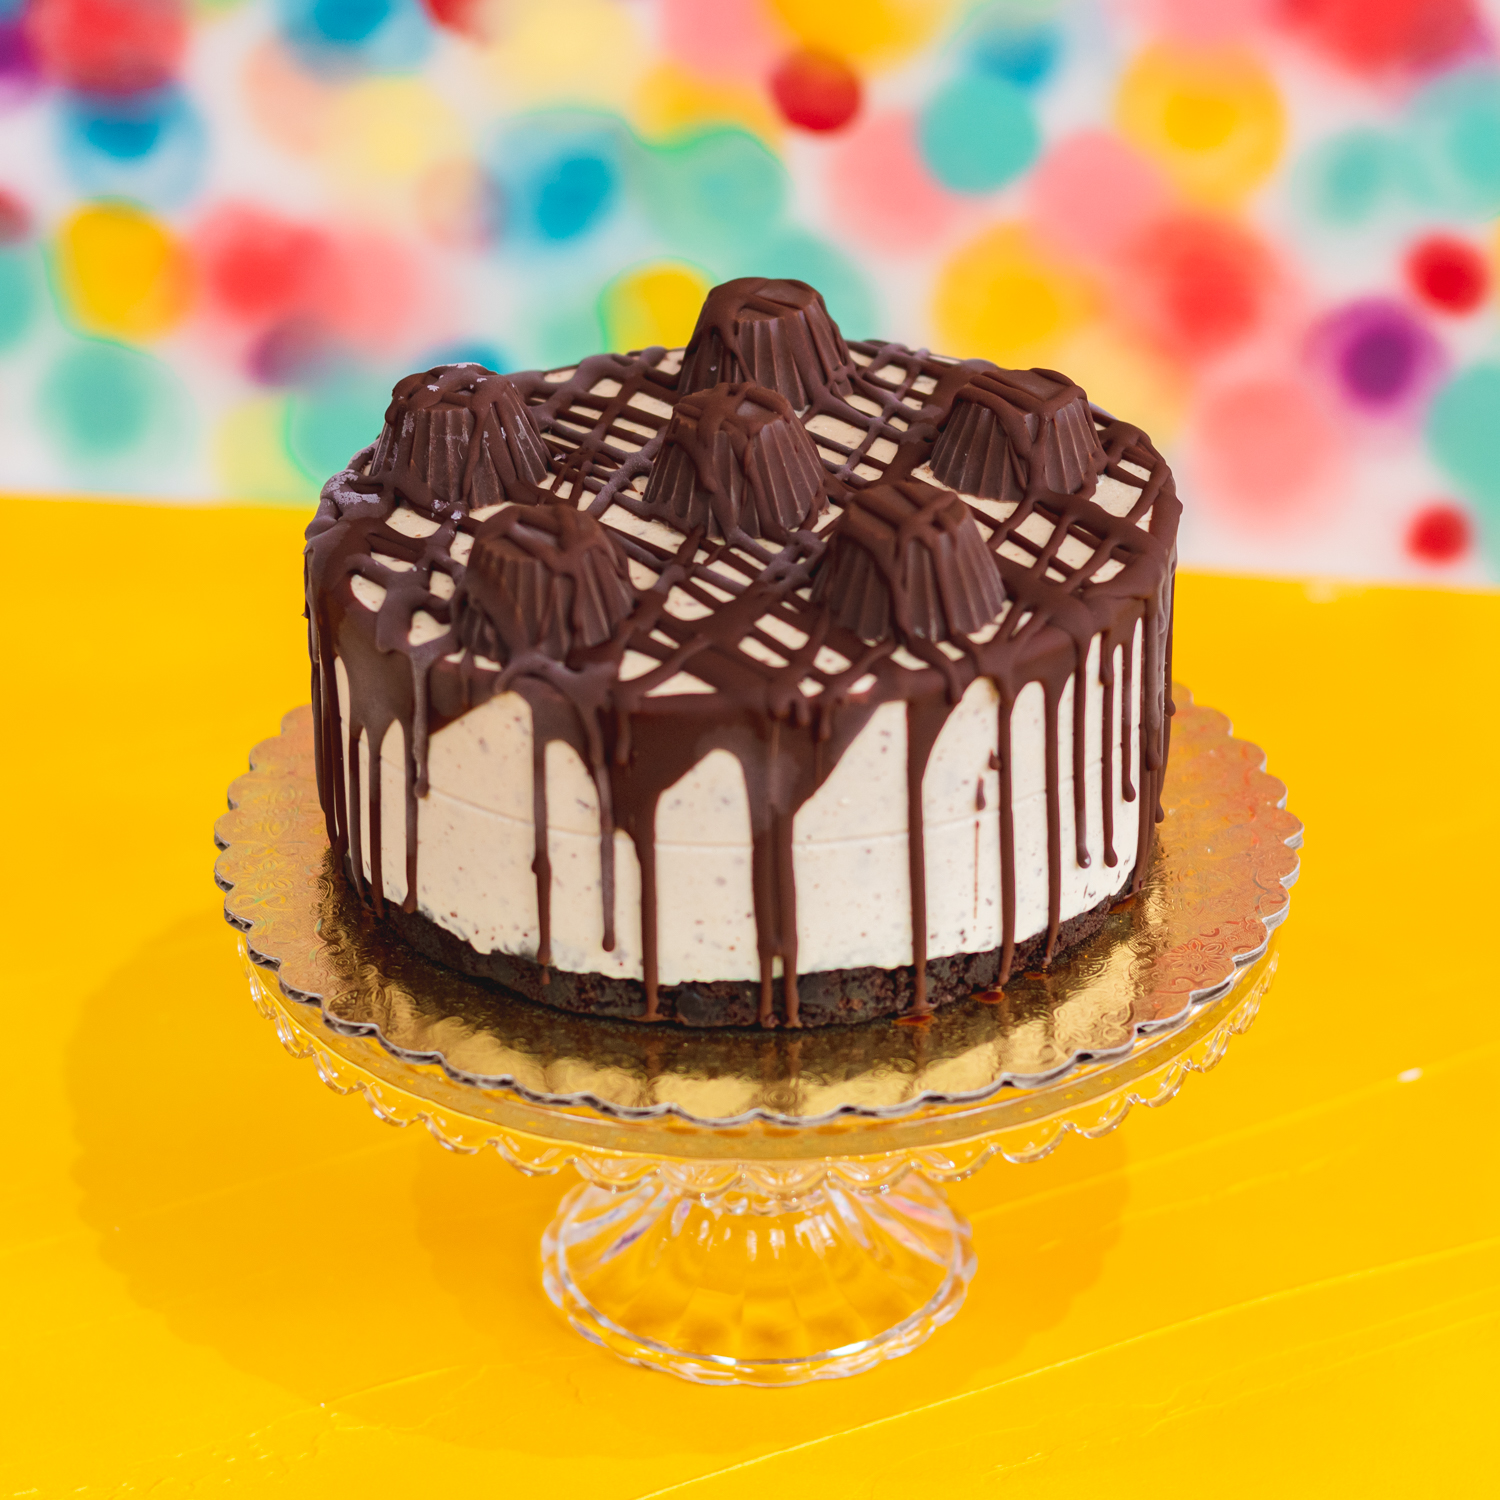 Ice Creme Cakes - Ice cream cakes are 8 inches across by 3 inches tall. Each serves 8-10 people and is priced at $40. Cakes are kept in stock and available to pick up from our front retail freezer. No reservations or ordering necessary, just grab and go!